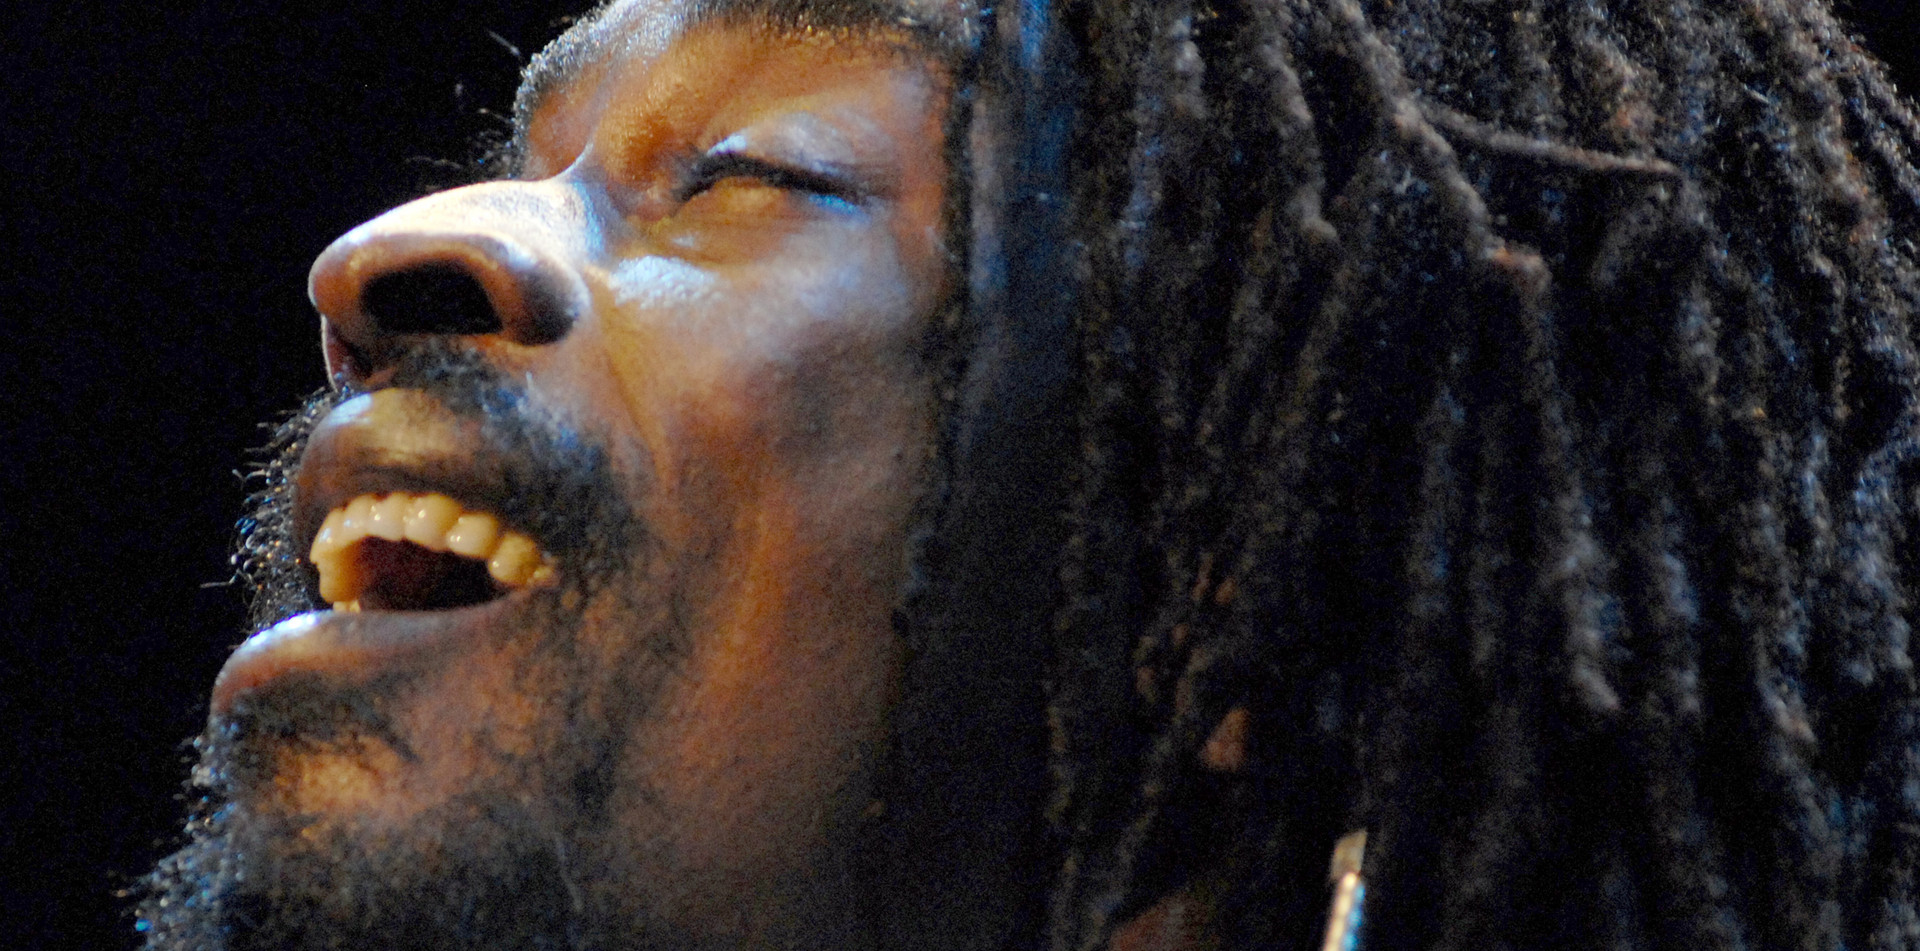 Singer Seu Jorge, from 'City of God' fame, performing in Rio, Brazil